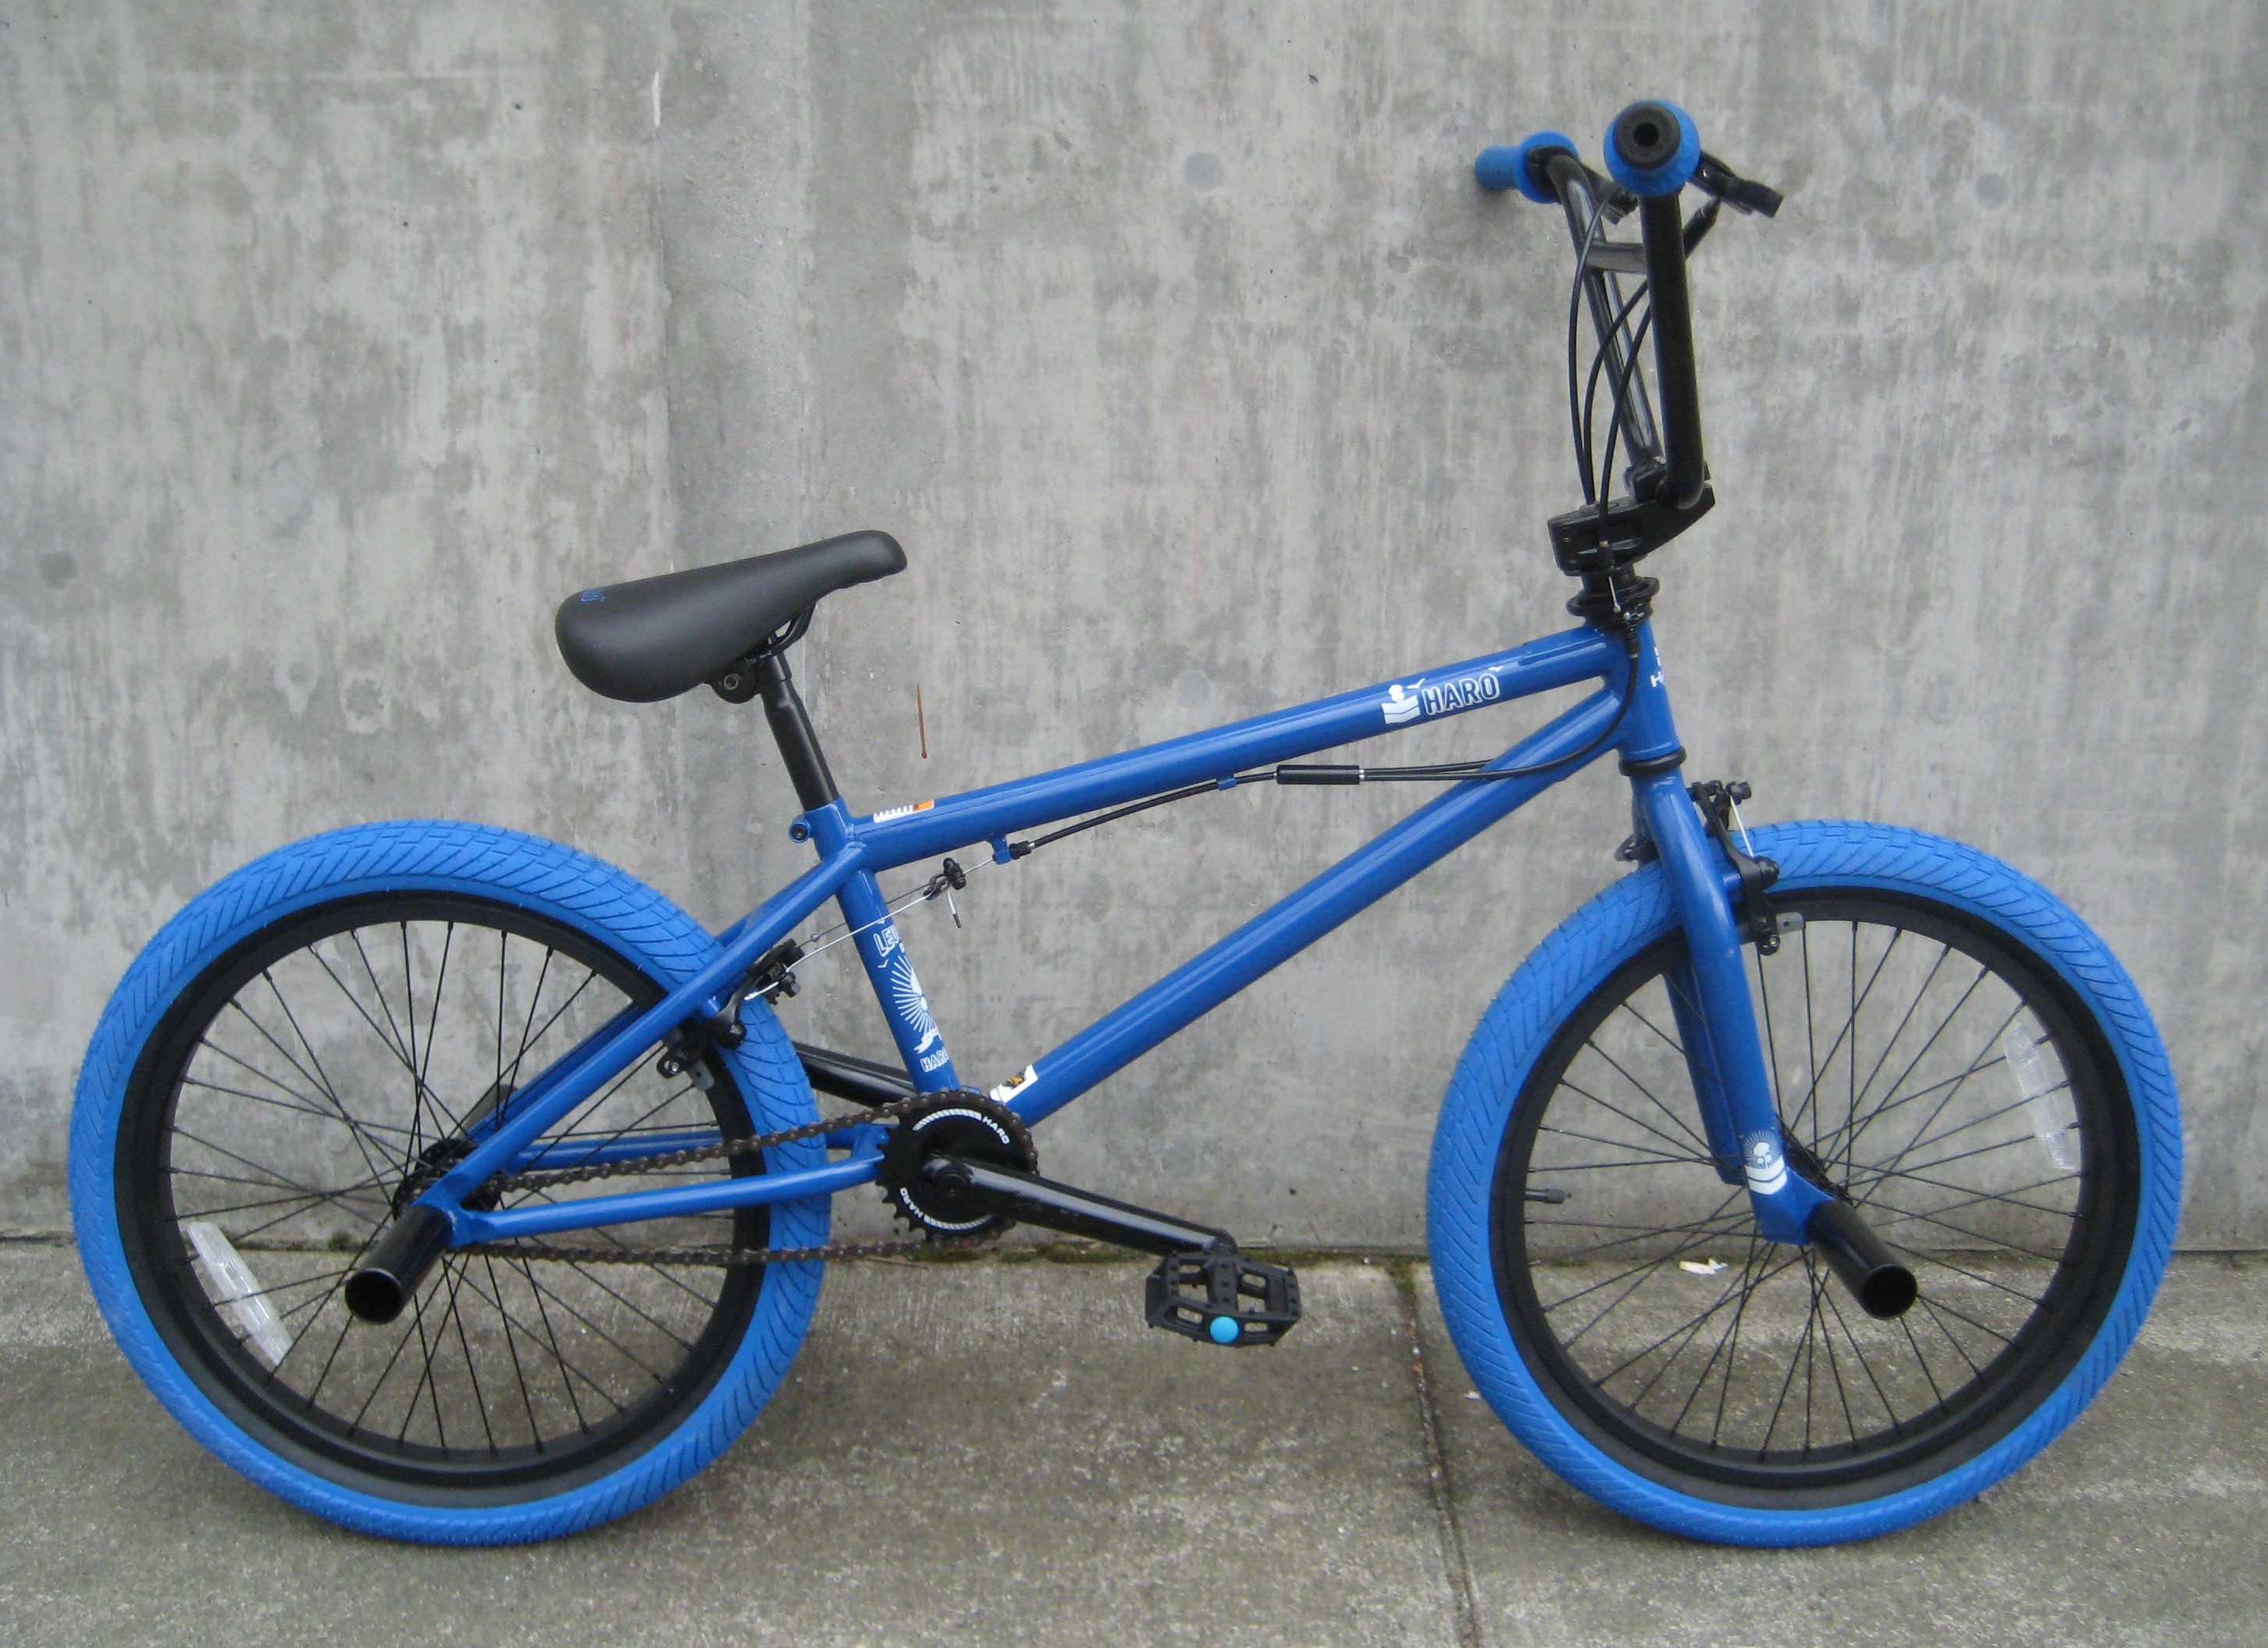 8b993c953c9 BMX/Kids | Classic Cycle Bainbridge Island Kitsap County